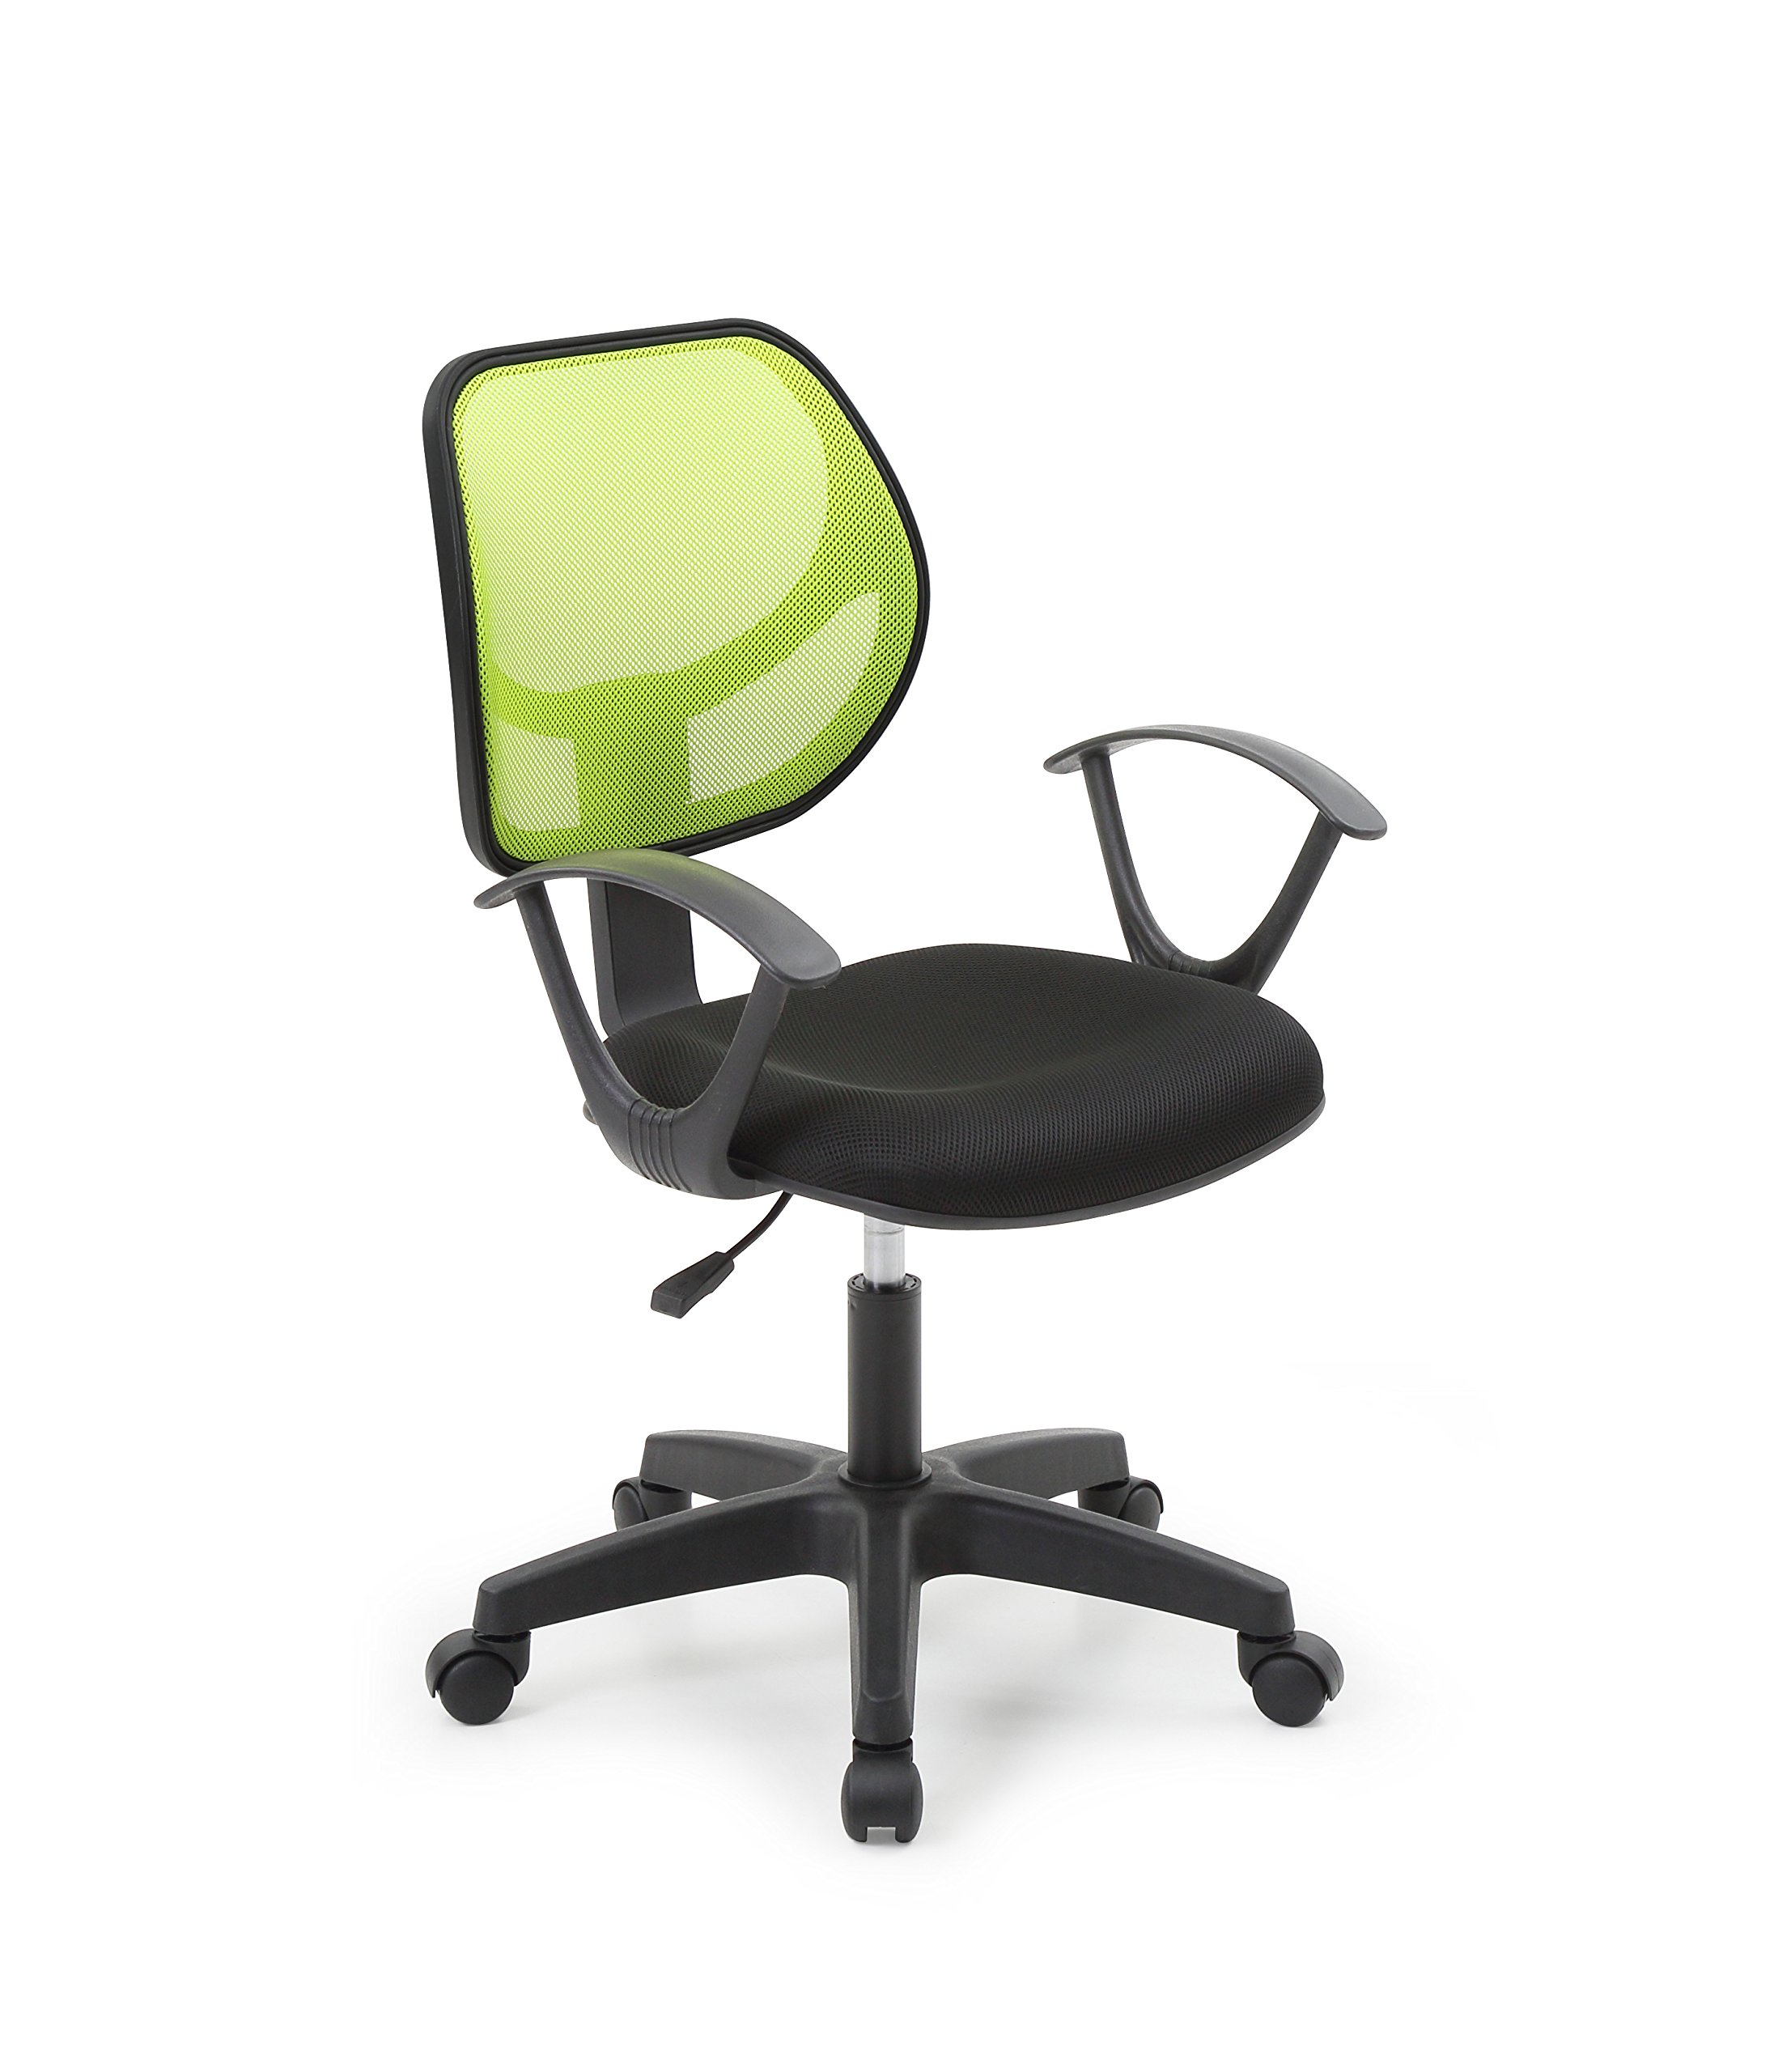 Hodedah Mesh, Mid-Back, Adjustable Height, Swiveling Task Chair with Padded Seat in Green